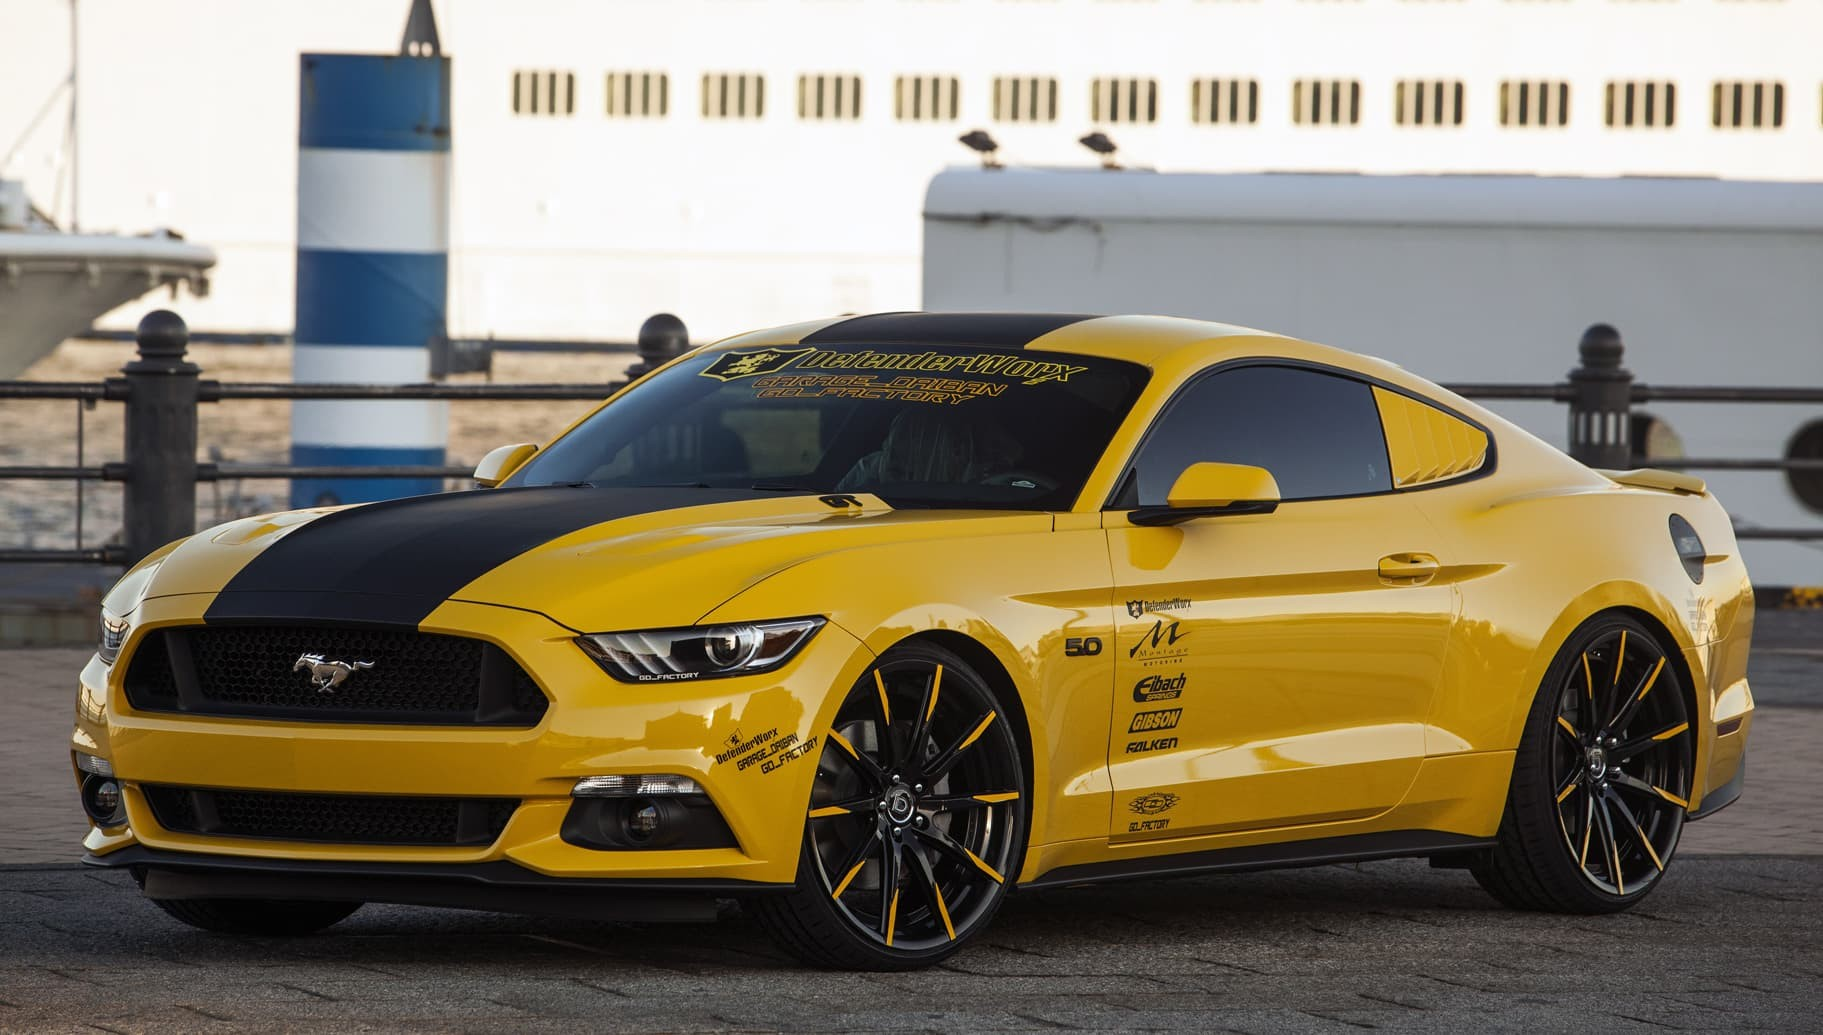 Custom CSS-10 on the Ford Mustang.